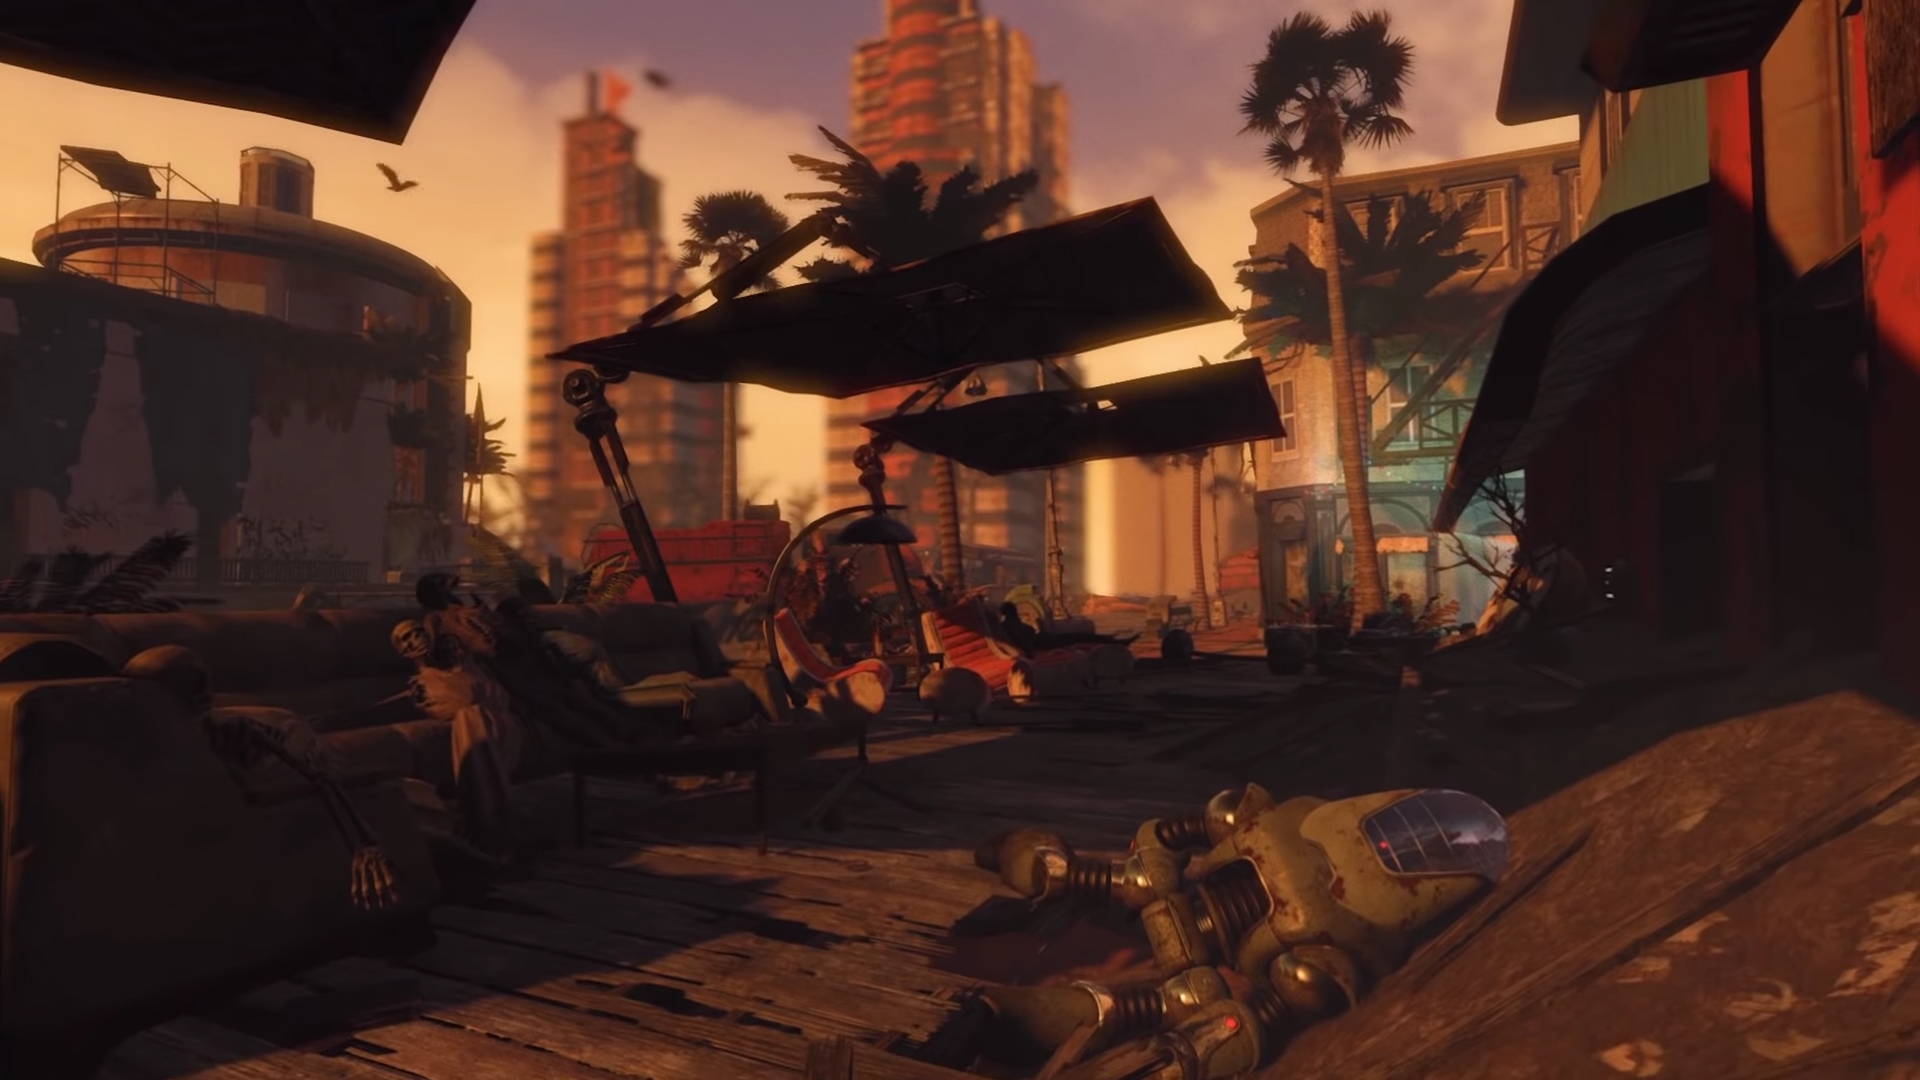 This Fallout: Miami mod makes a good first impression screenshot